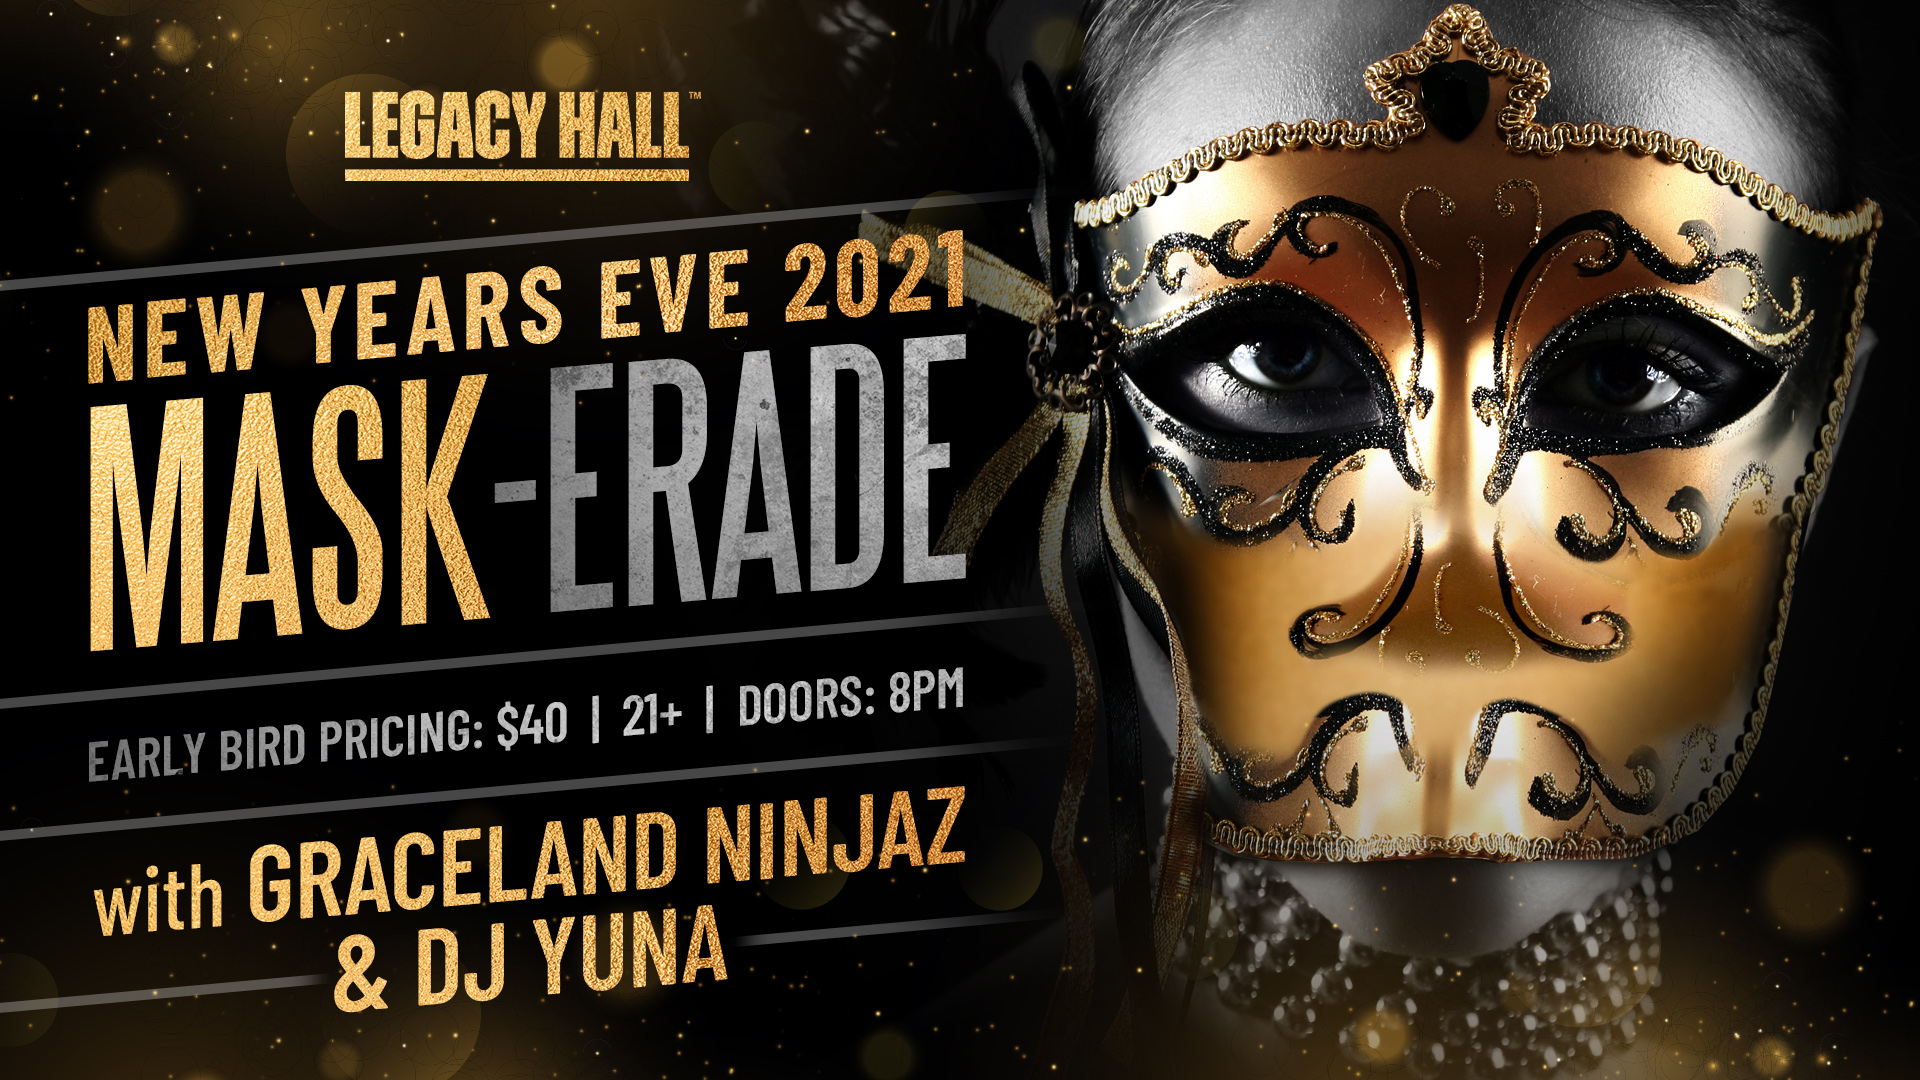 Promo image of NYE 2021 Mask-erade Party at Legacy Hall